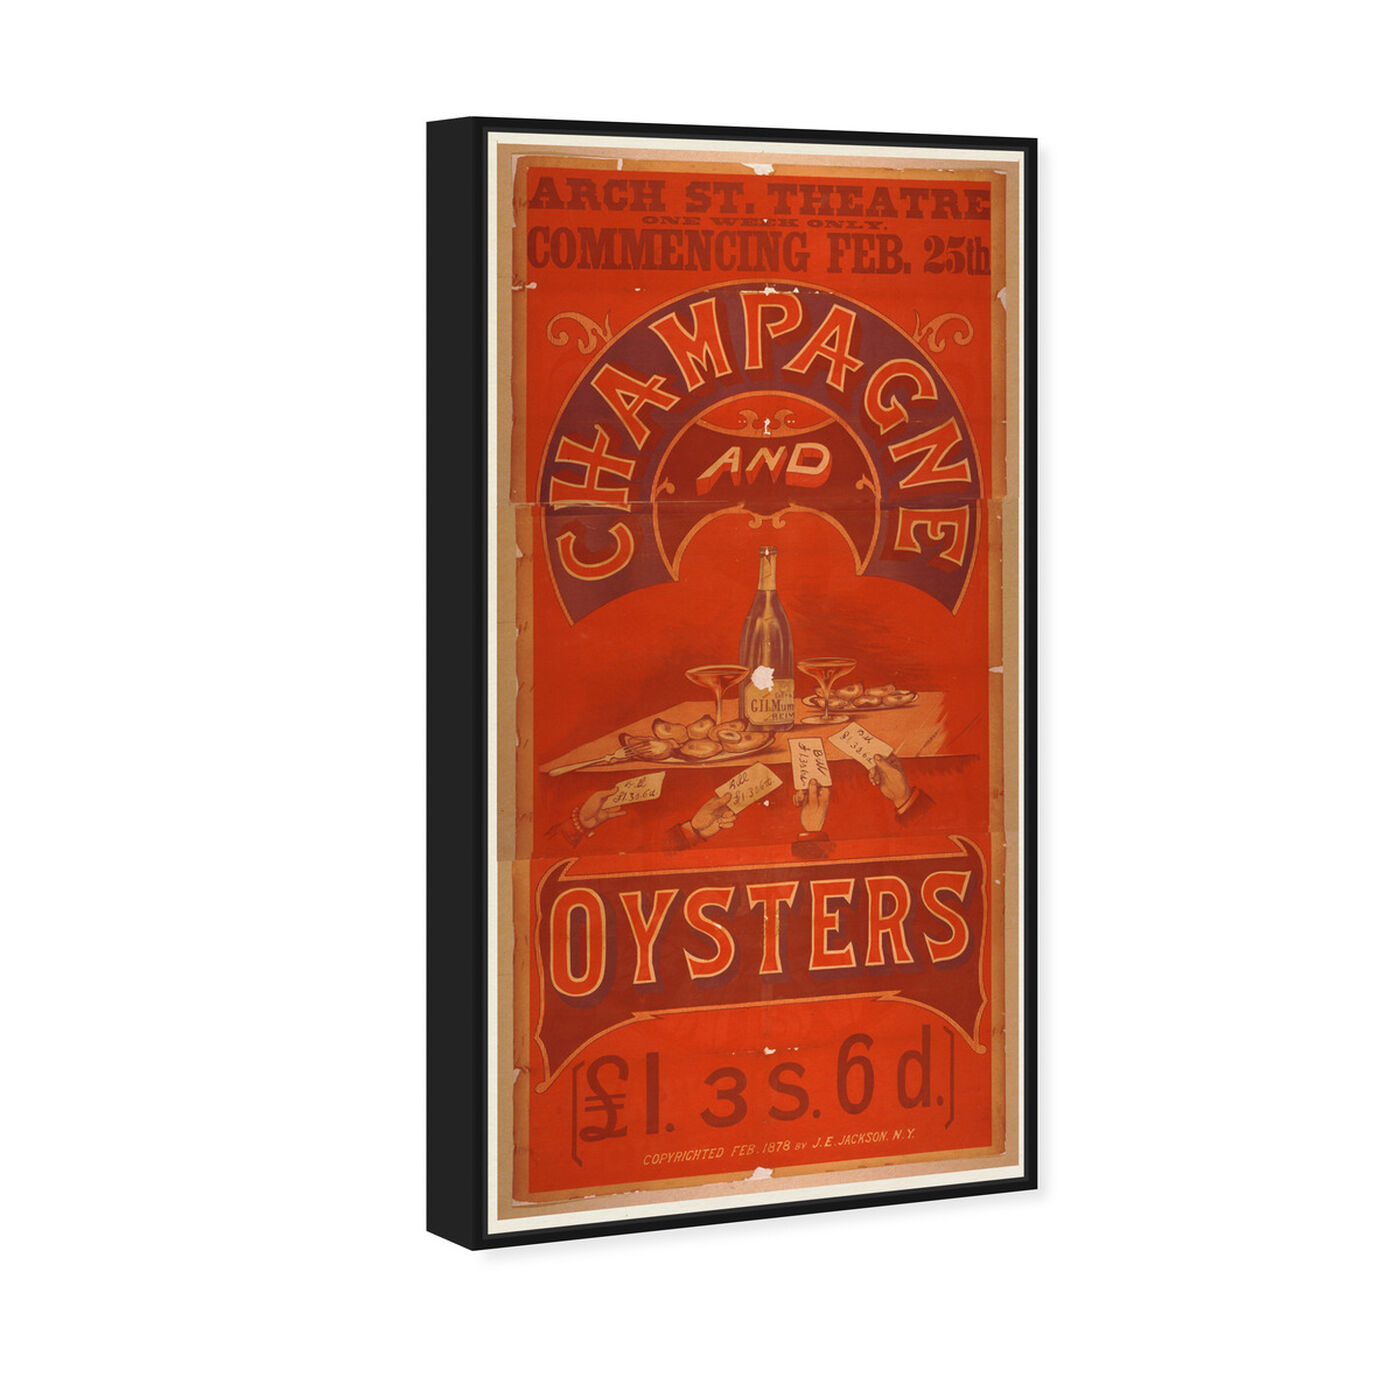 Angled view of Champagne and Oysters featuring advertising and posters art.